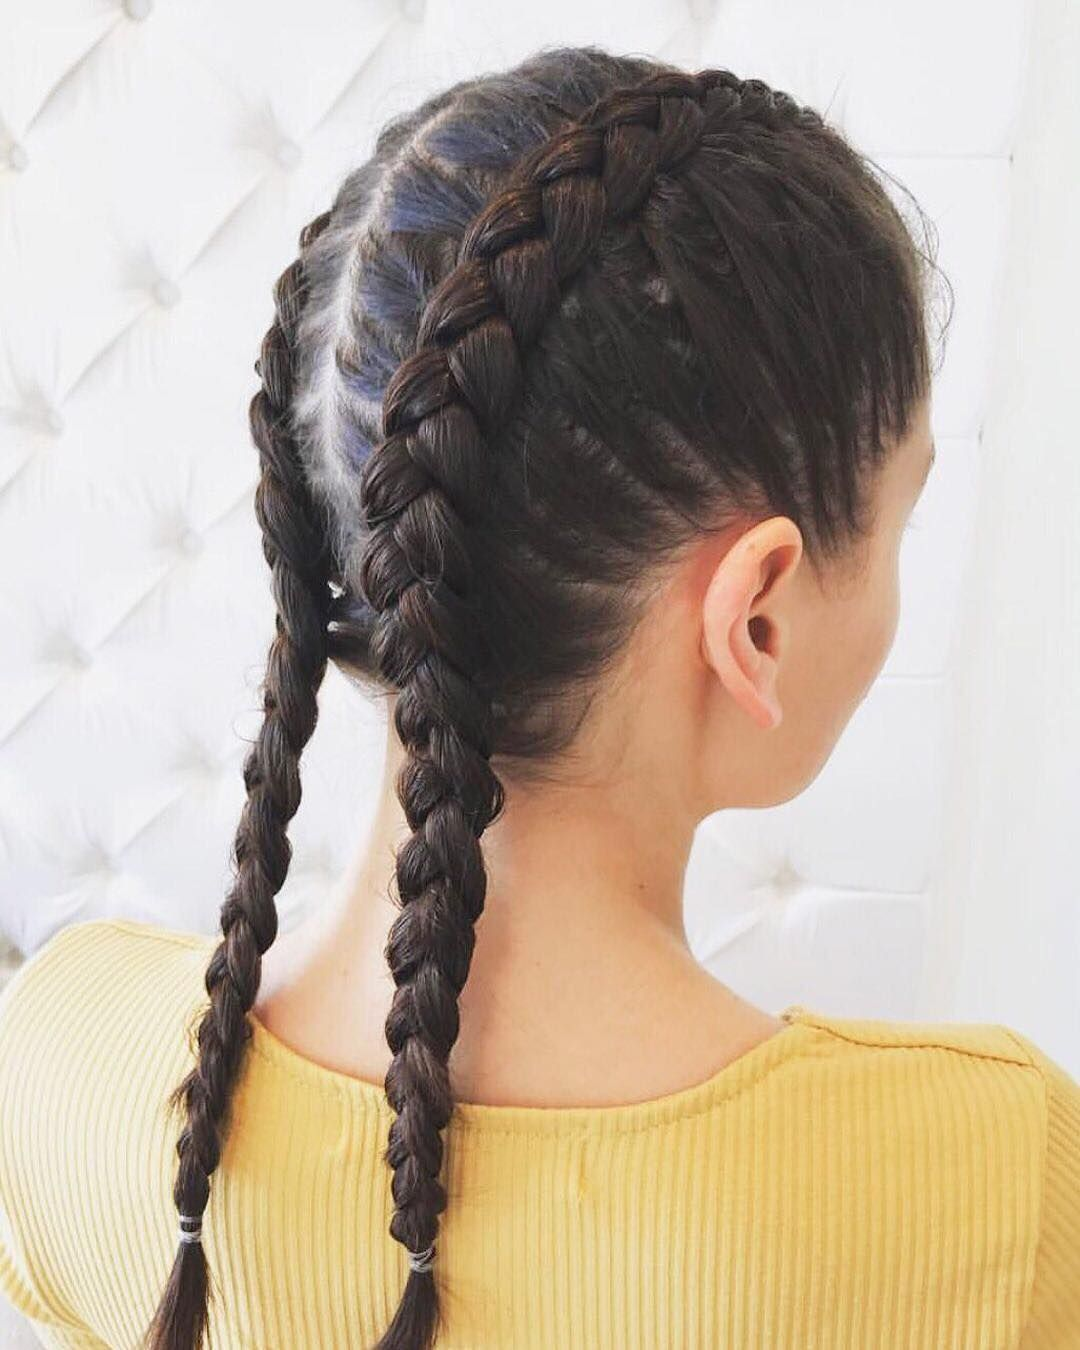 Two Braids Are Better Than One Rope Braided Hairstyle Braided Hairstyles Braids For Short Hair